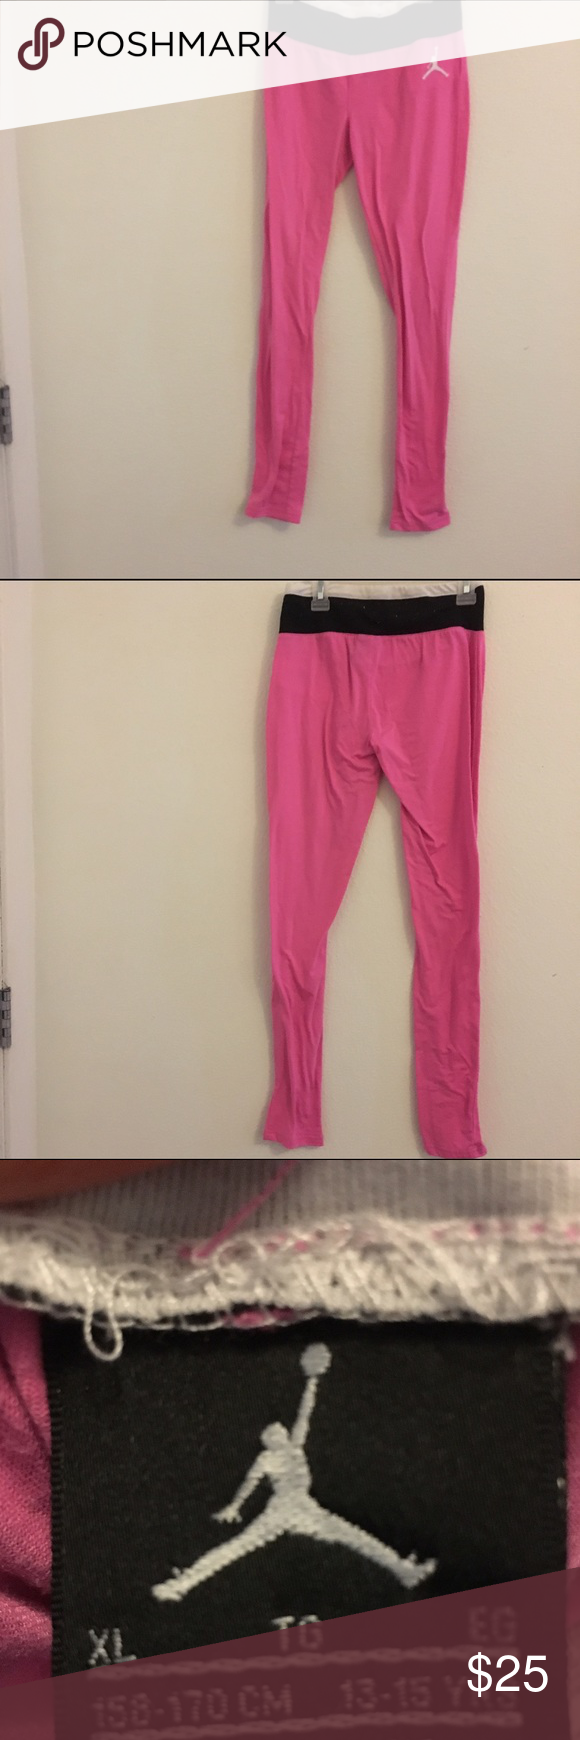 Pink Jordan legging! ((: I've only worn them twice so they are in great condition! Jordan Bottoms Leggings